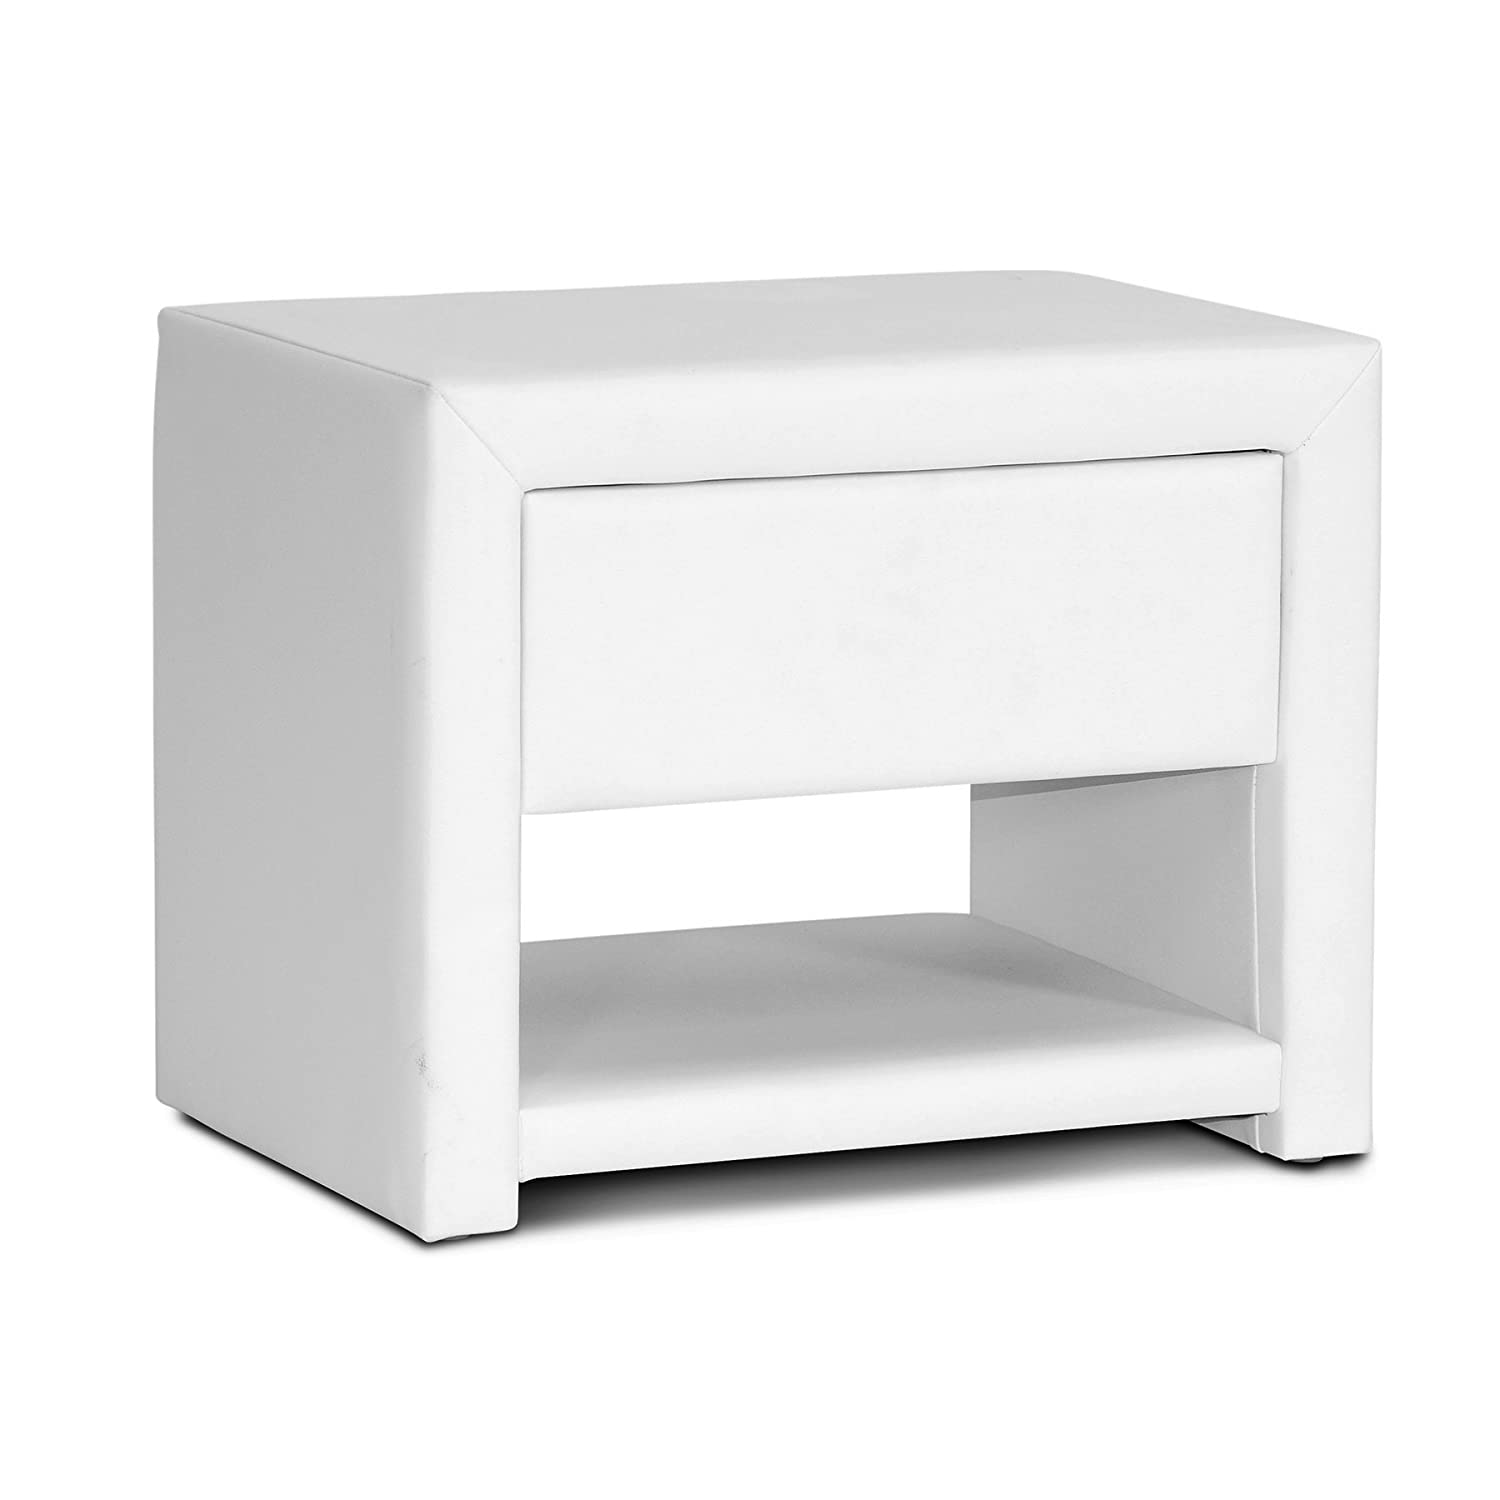 Baxton Studio Massey Upholstered Modern Nightstand, White